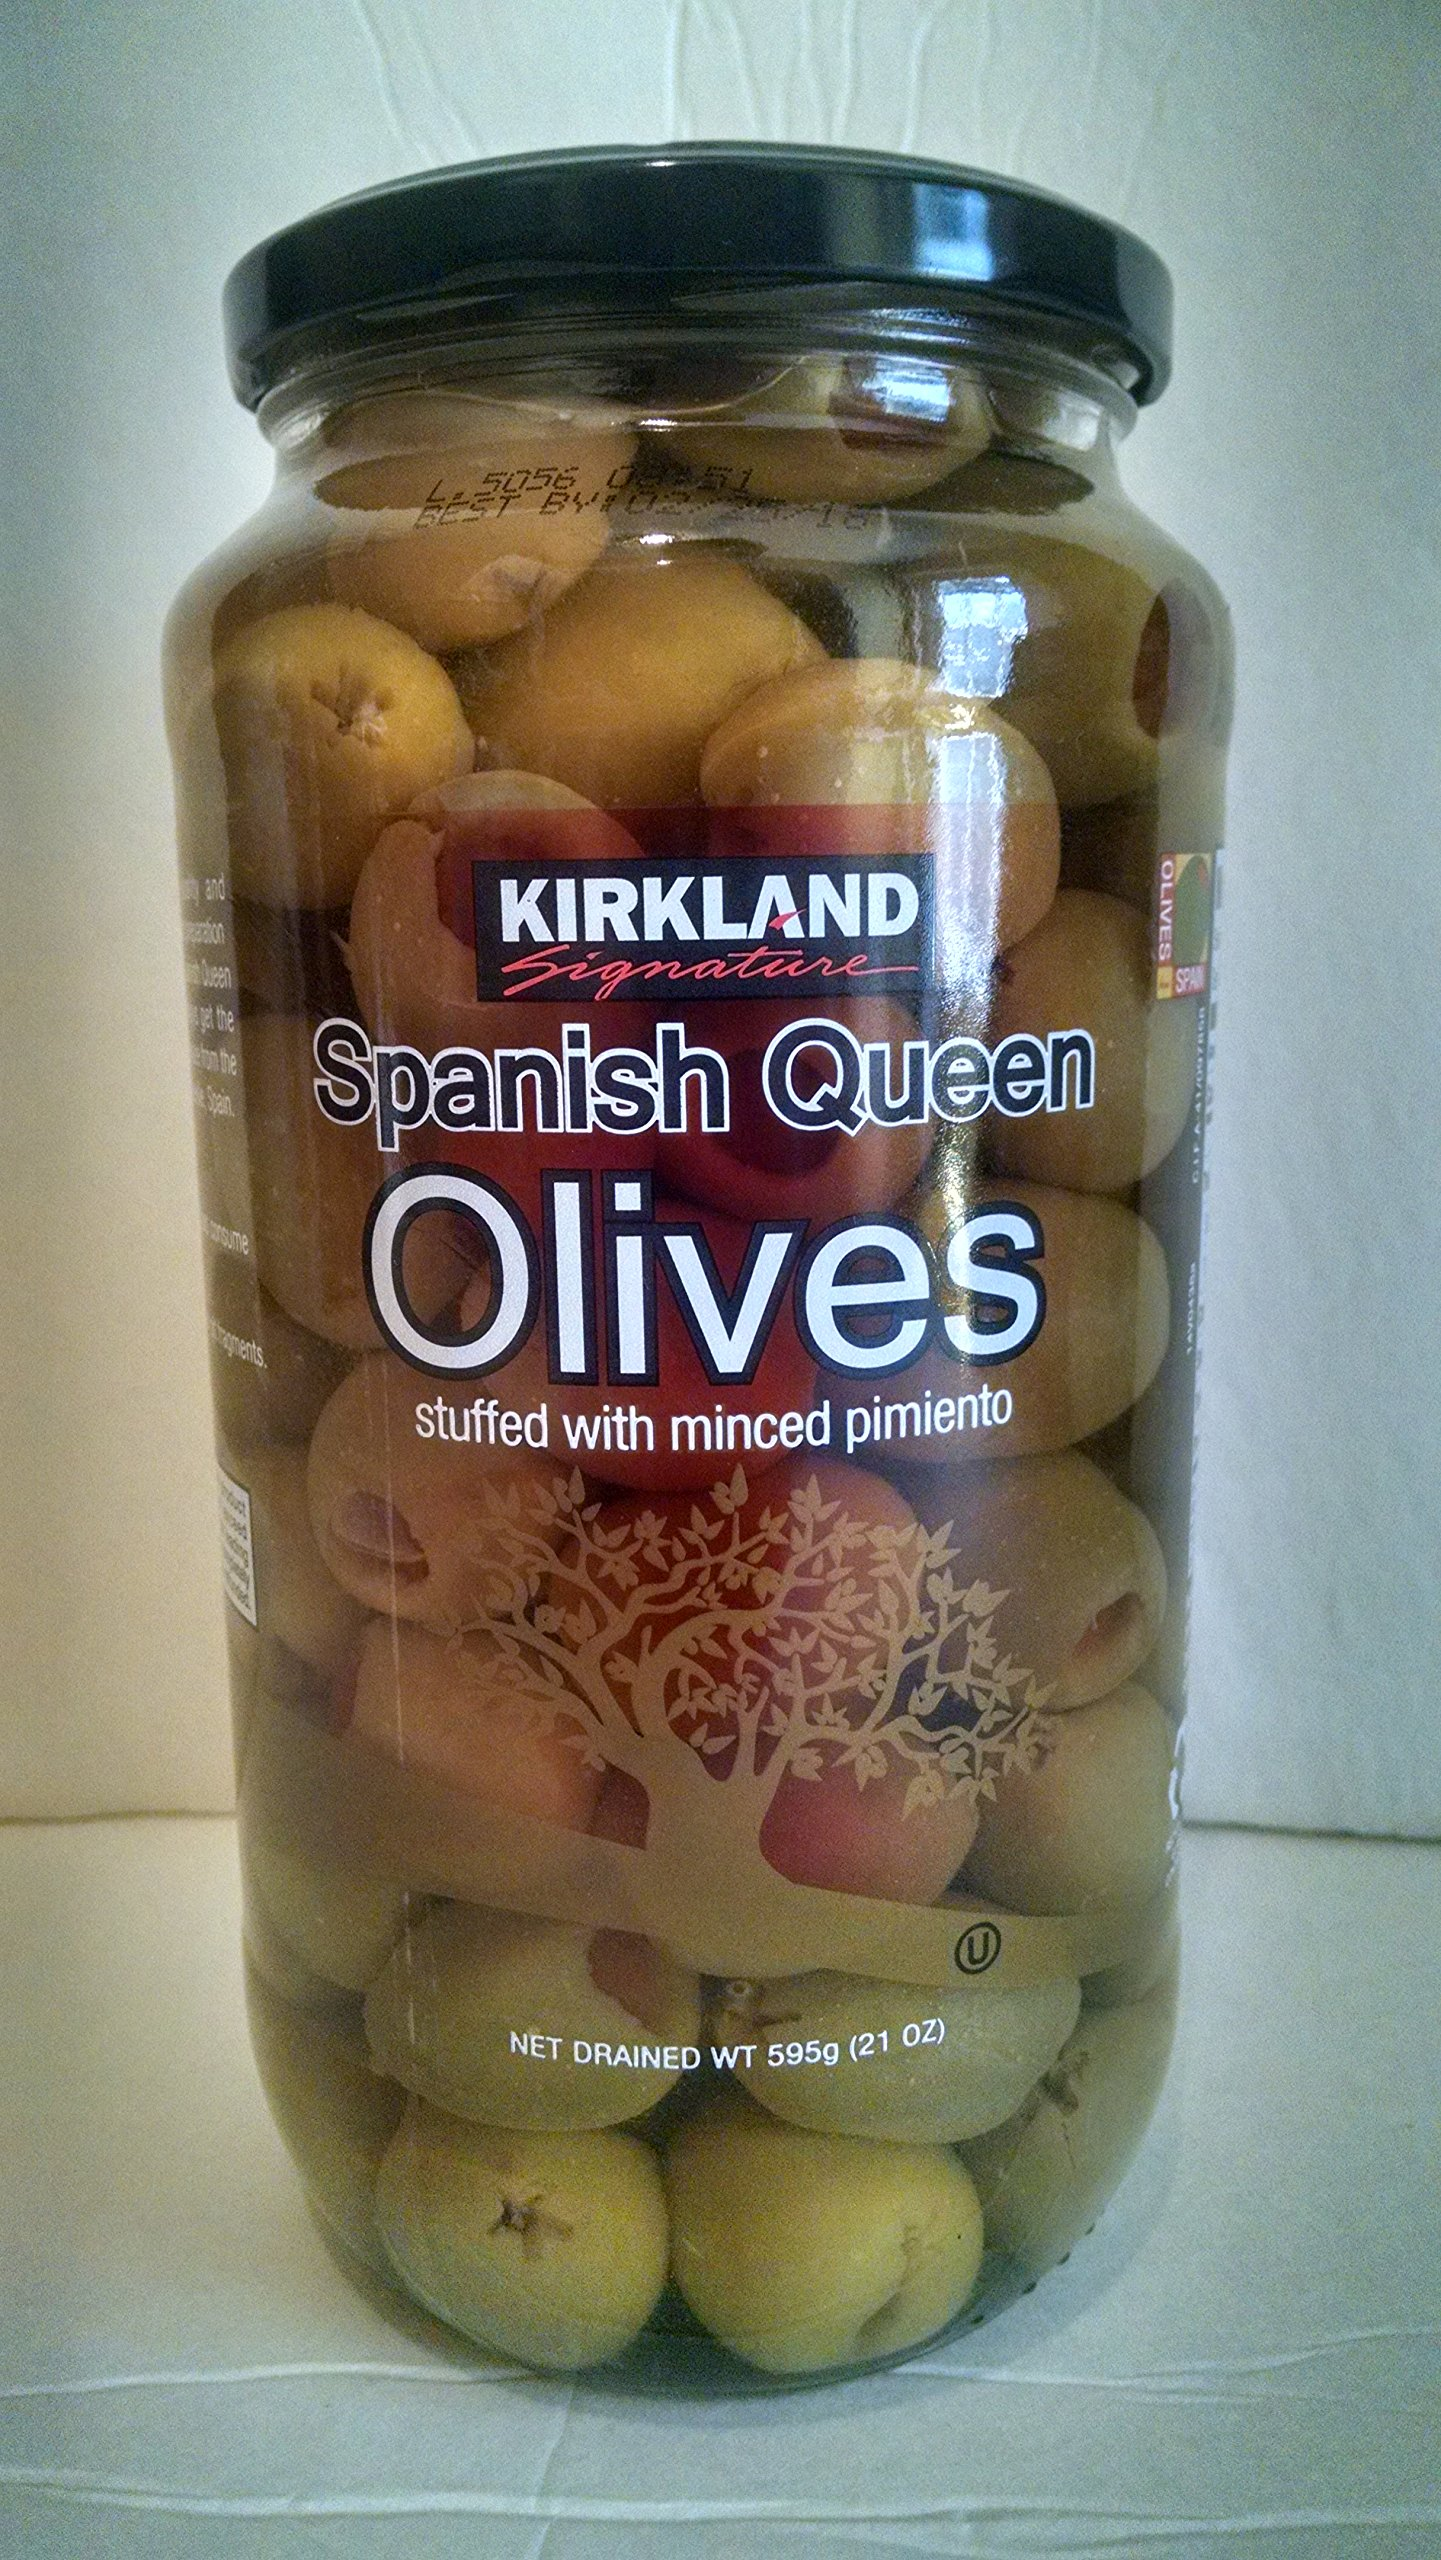 Kirkland Signature Spanish Queen Olives Stuffed with Pimiento 21 Oz Net Drained Wt.